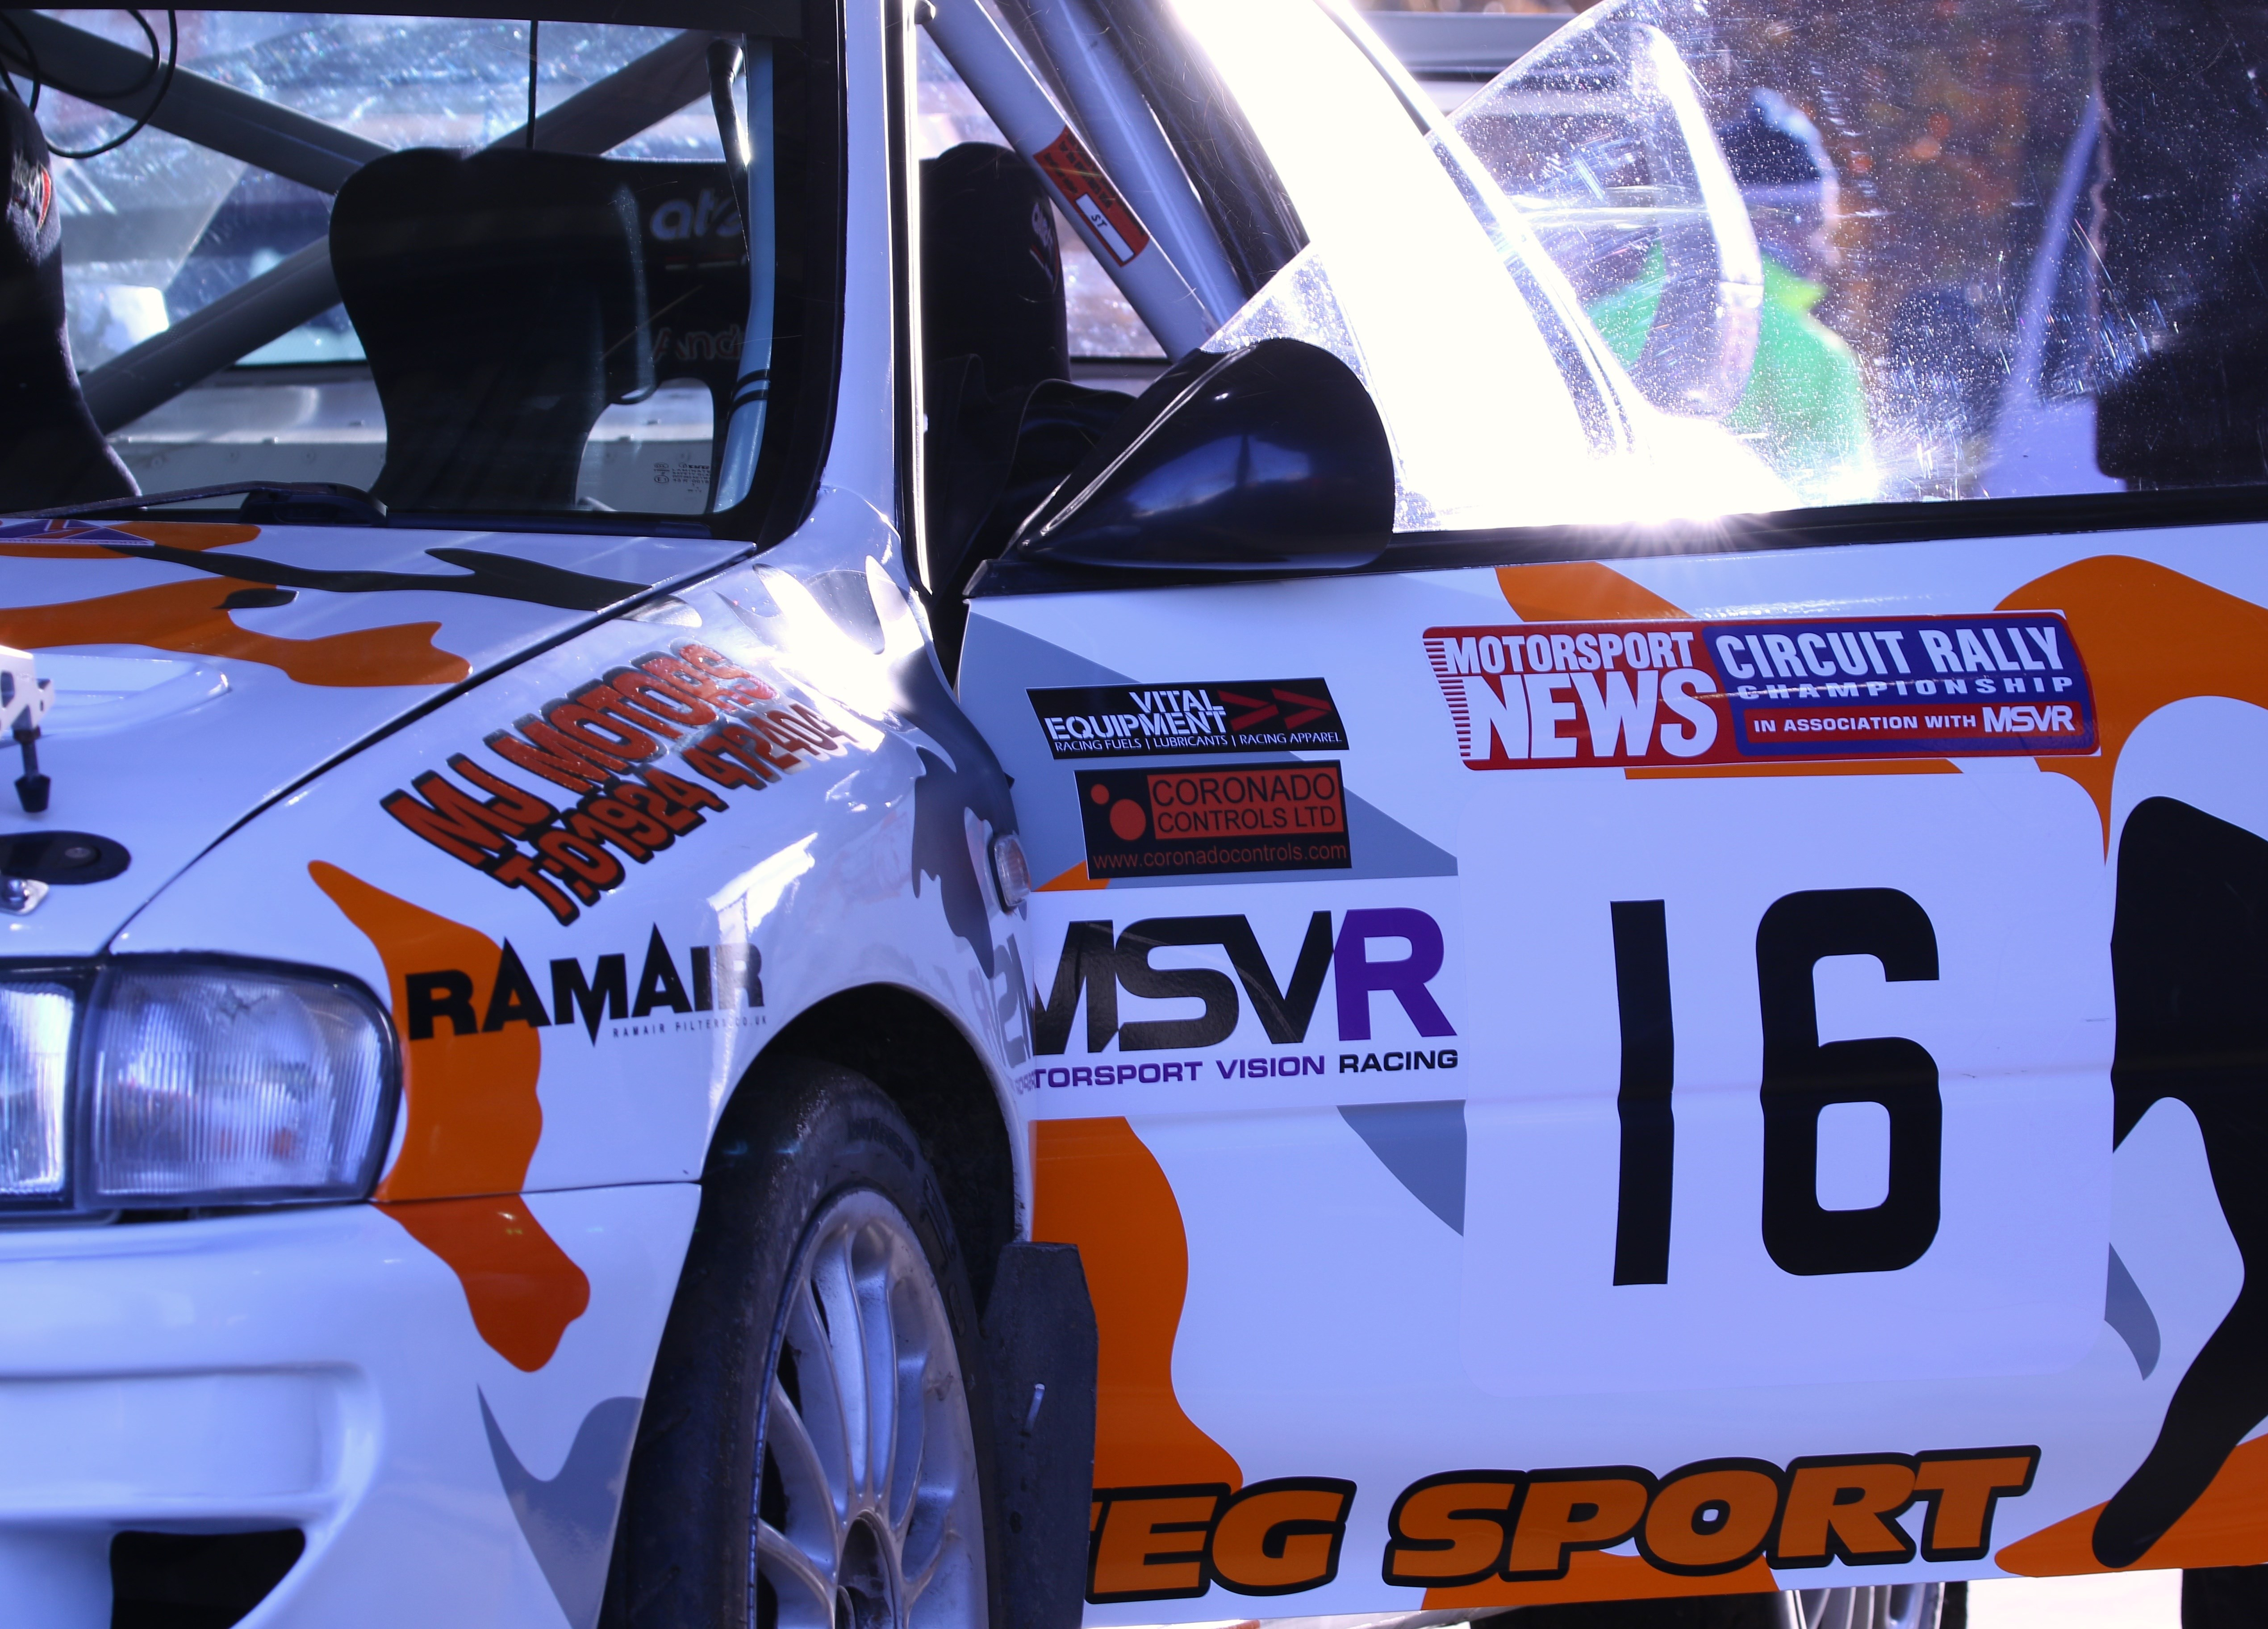 MSVR News - Final Round of Motorsport News Circuit Rally Championship to be streamed live